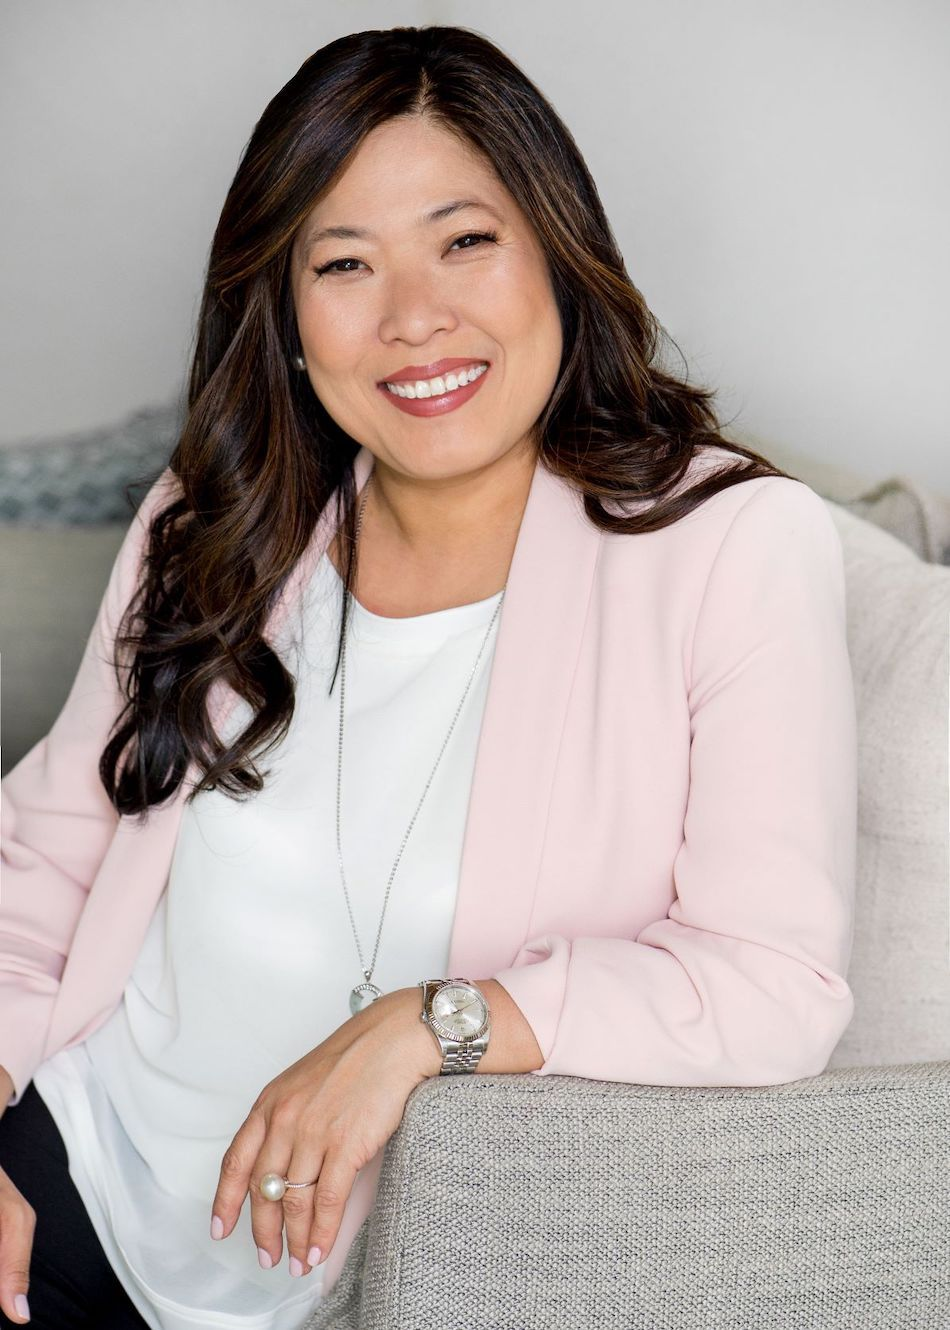 The Honourable Mary Ng, Minister of Small Business and Export Promotion helps entrepreneurs create prosperity through trade and innovation, particularly through the promotion of export opportunities for Canadian small- and medium-sized enterprises (SMEs)